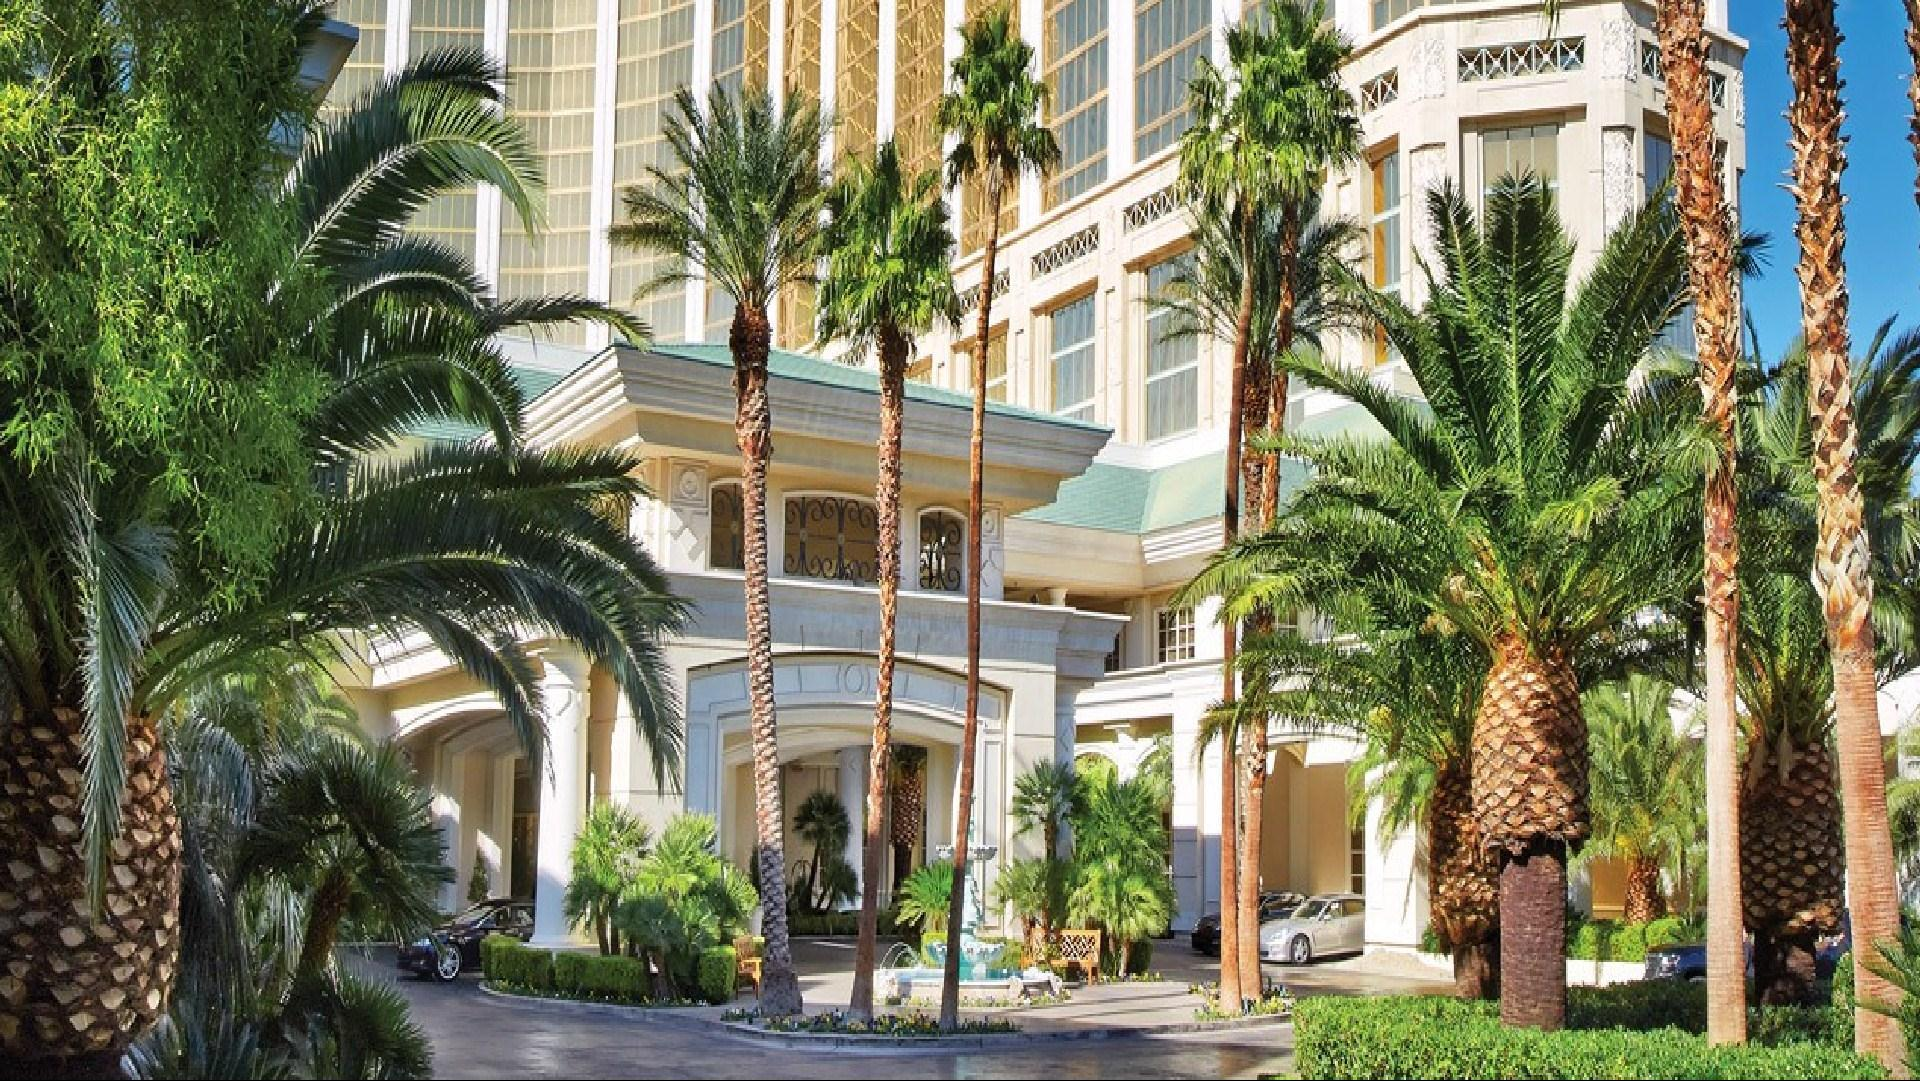 Four Seasons Las Vegas Map.Meetings And Events At Four Seasons Hotel Las Vegas Las Vegas Nv Us